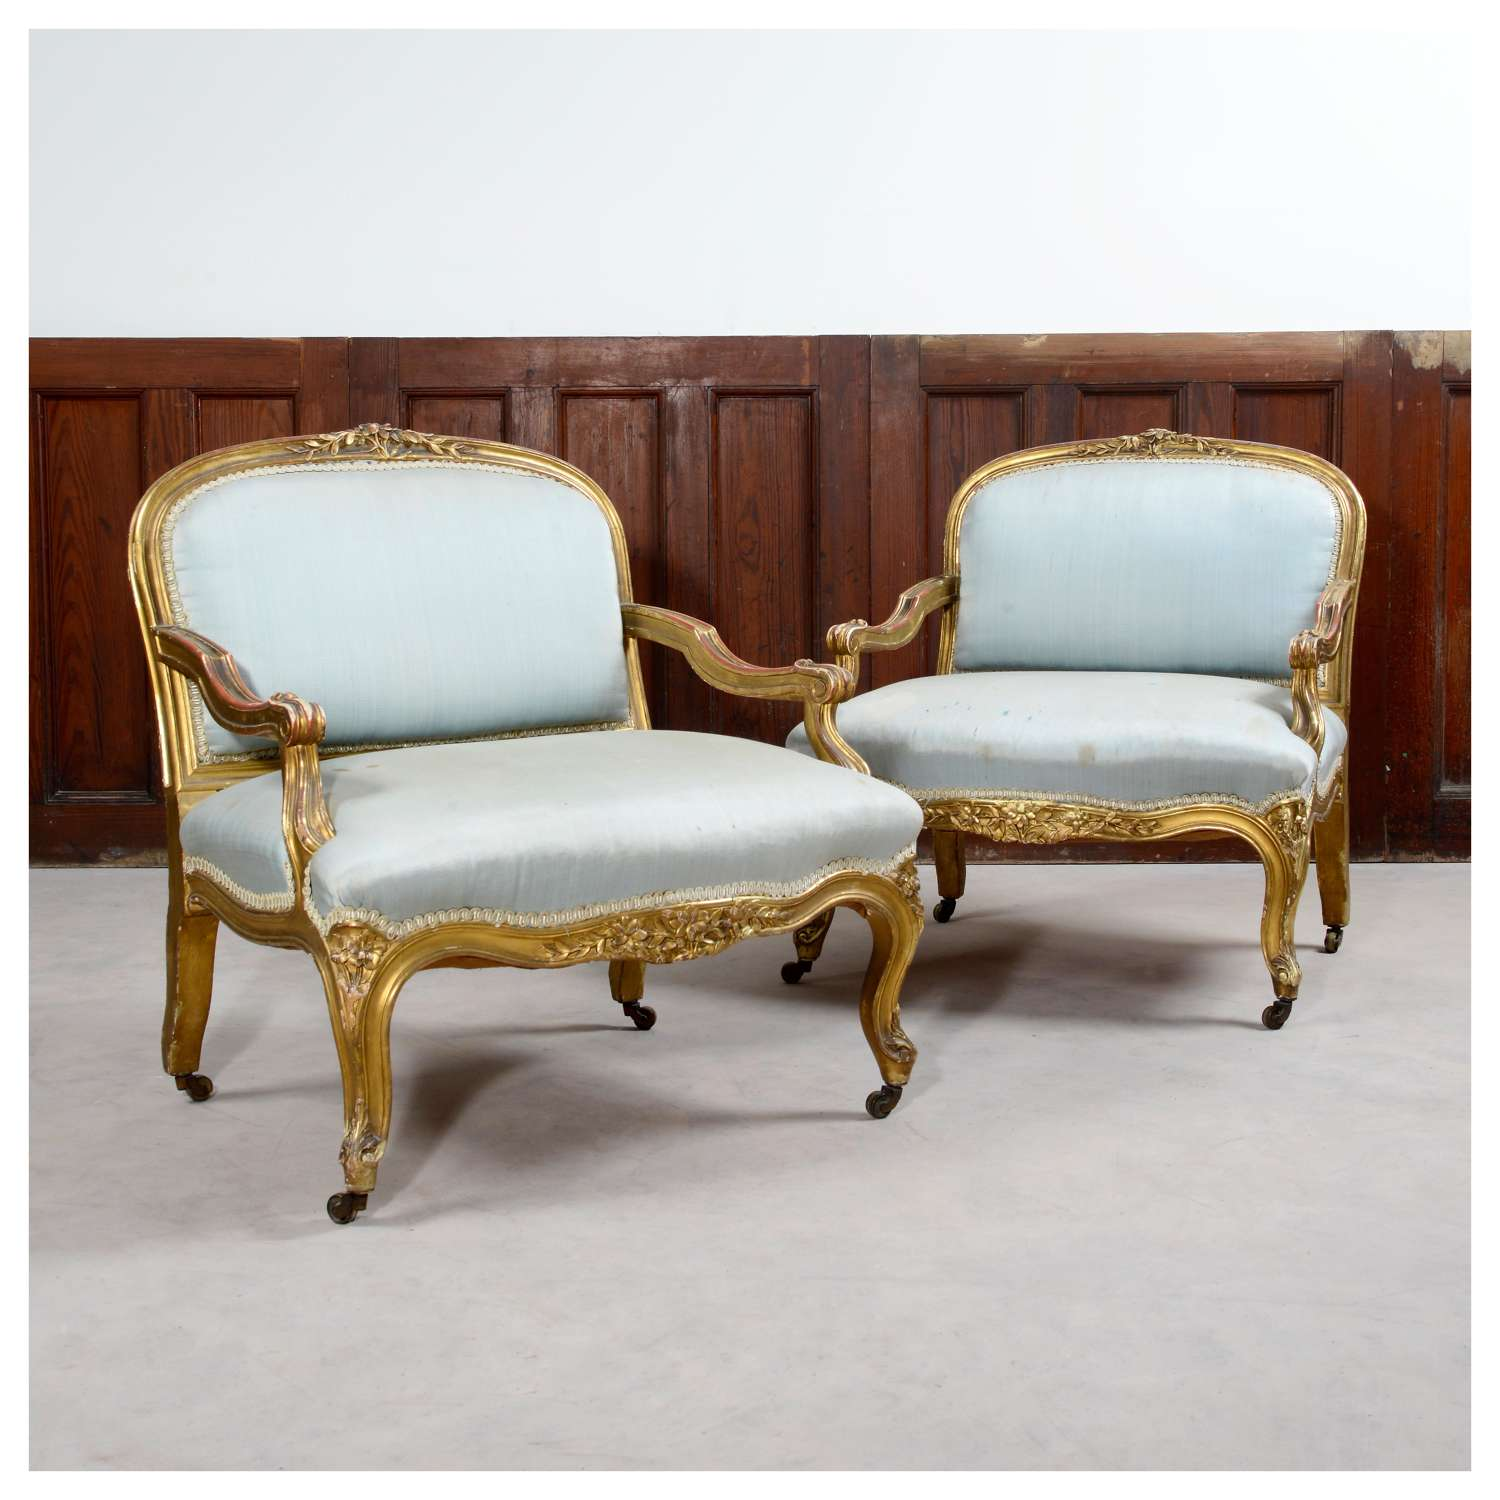 Pair of French Louis XV style gilt bedroom armchairs